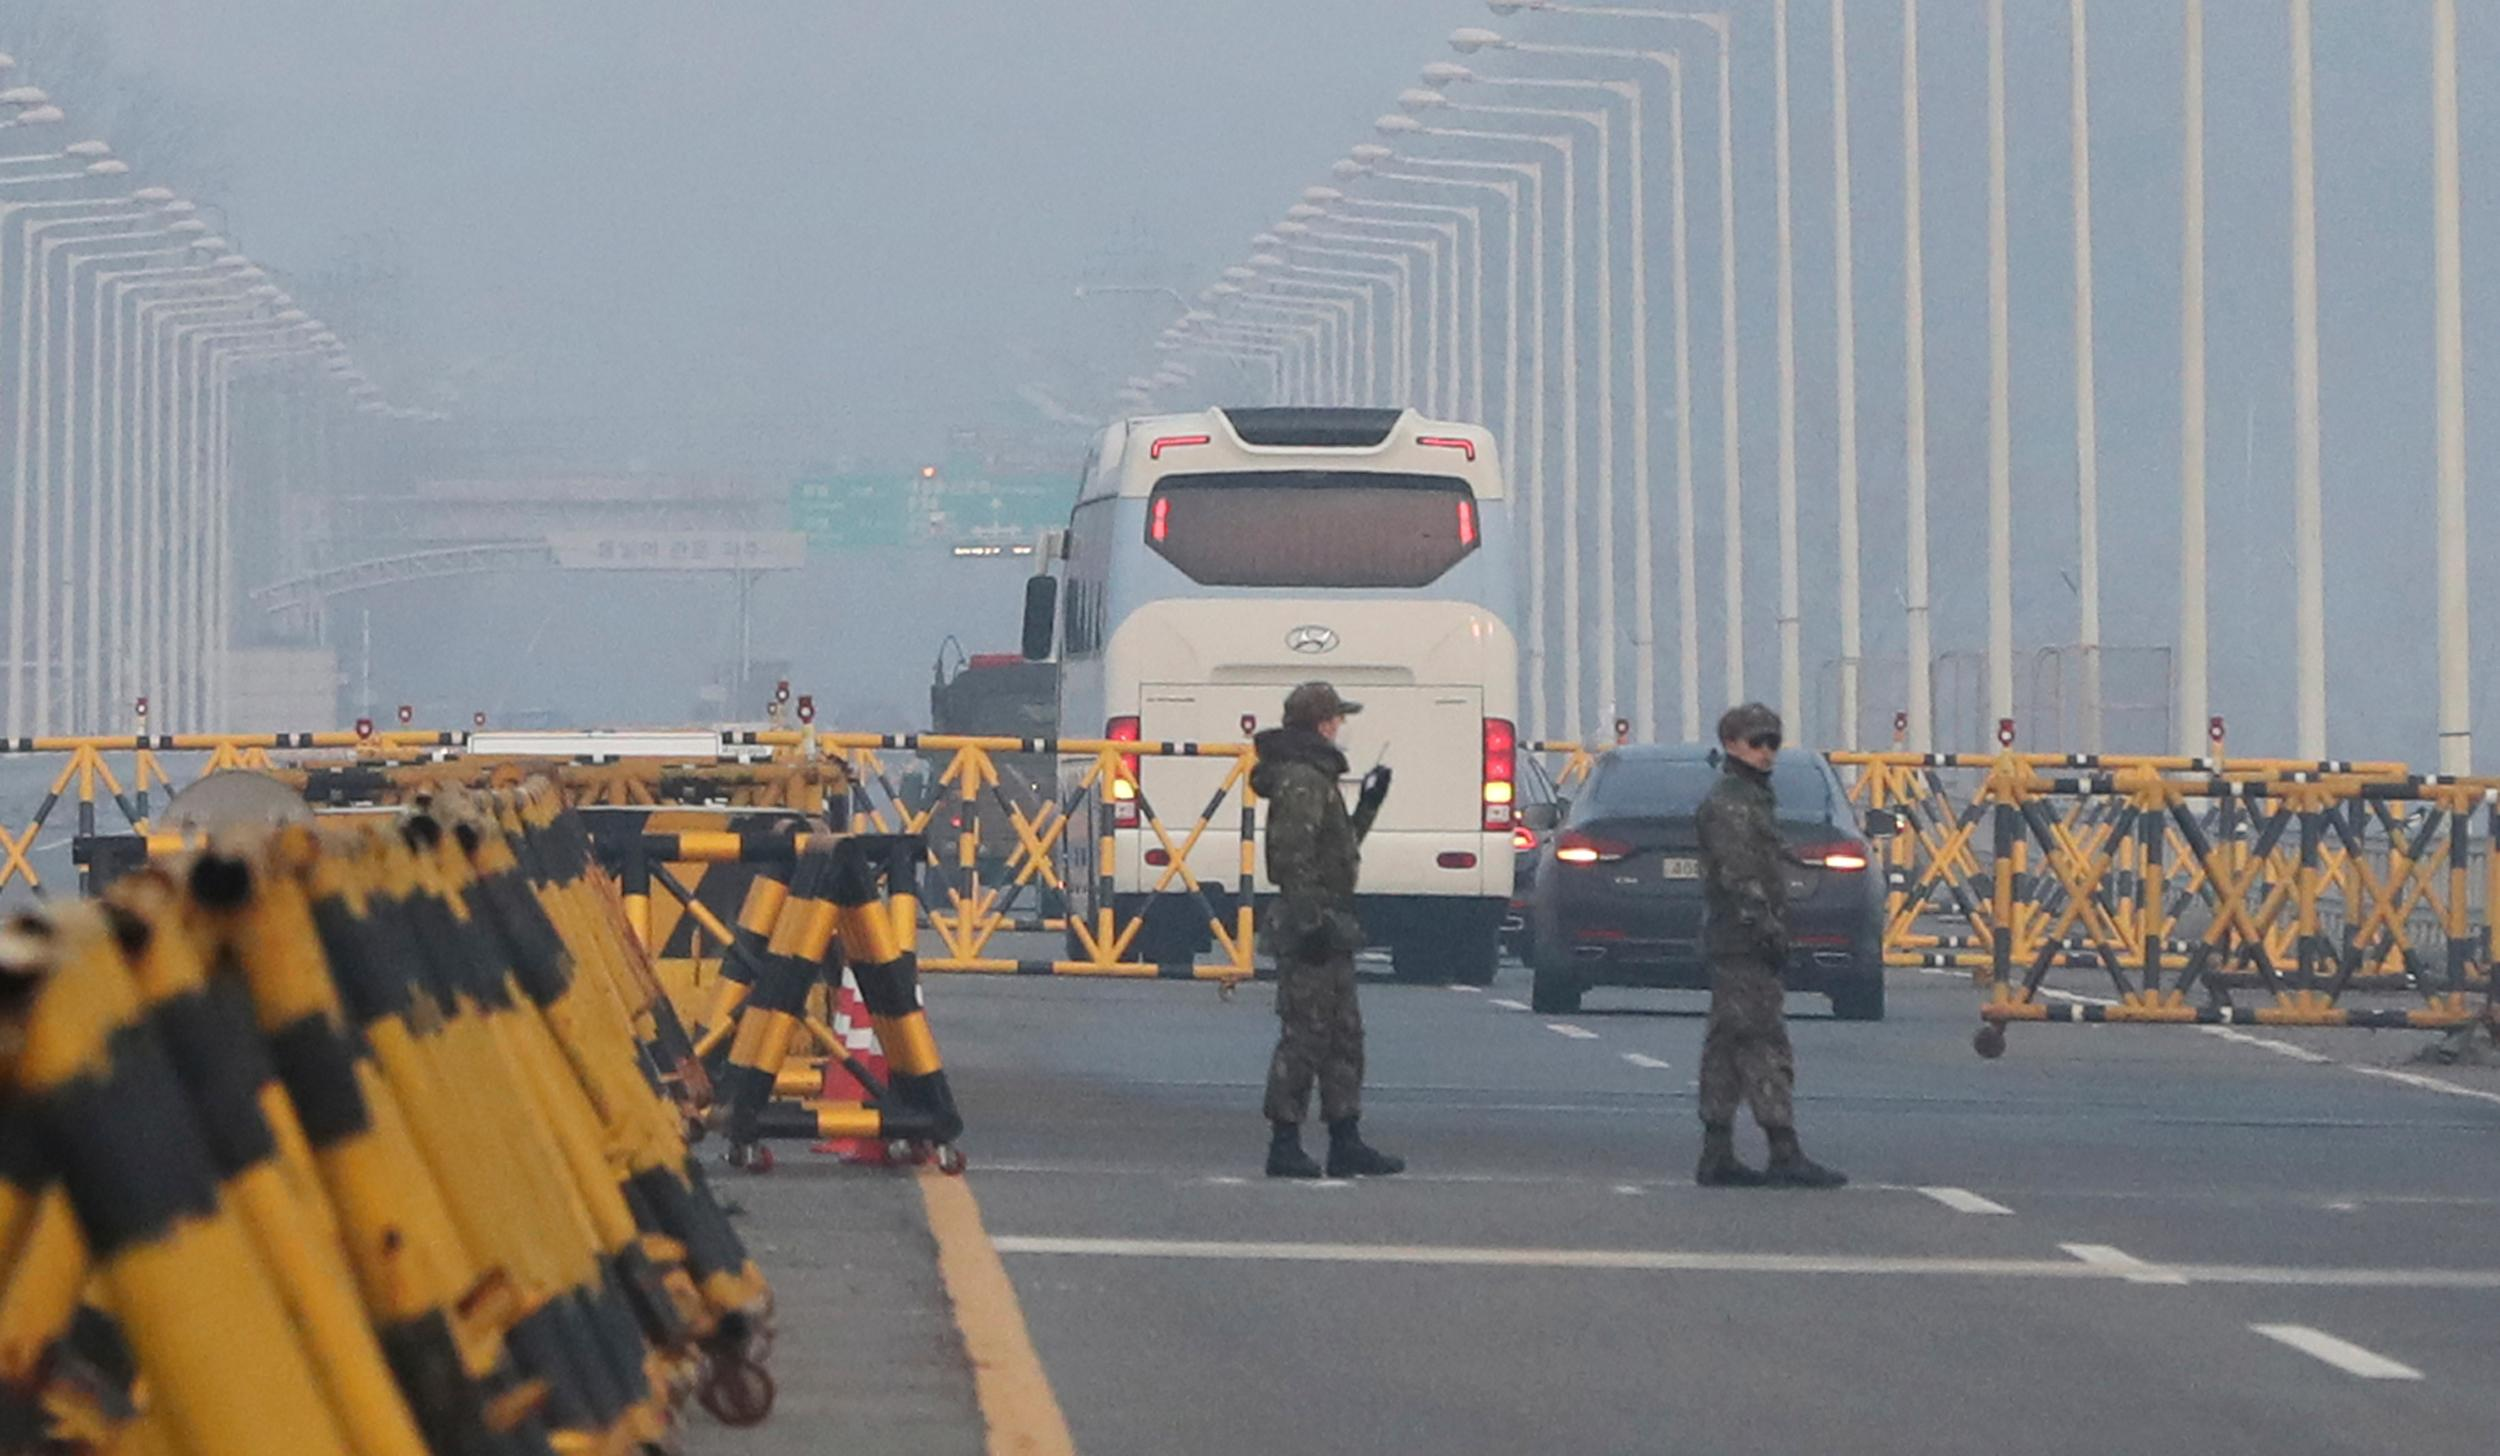 South Korean soldiers stand as vehicles carrying the South Korean delegation pass at Unification Bridge, which leads to the Panmunjom in the Demilitarized Zone in Paju, South Korea, Wednesday, Jan. 17, 2018. South Korean delegation departed for Panmunjom on Wednesday morning for talks with North Korea to further discuss the North's paricipation in the upcoming Winter Olympics. (AP Photo/Lee Jin-man)